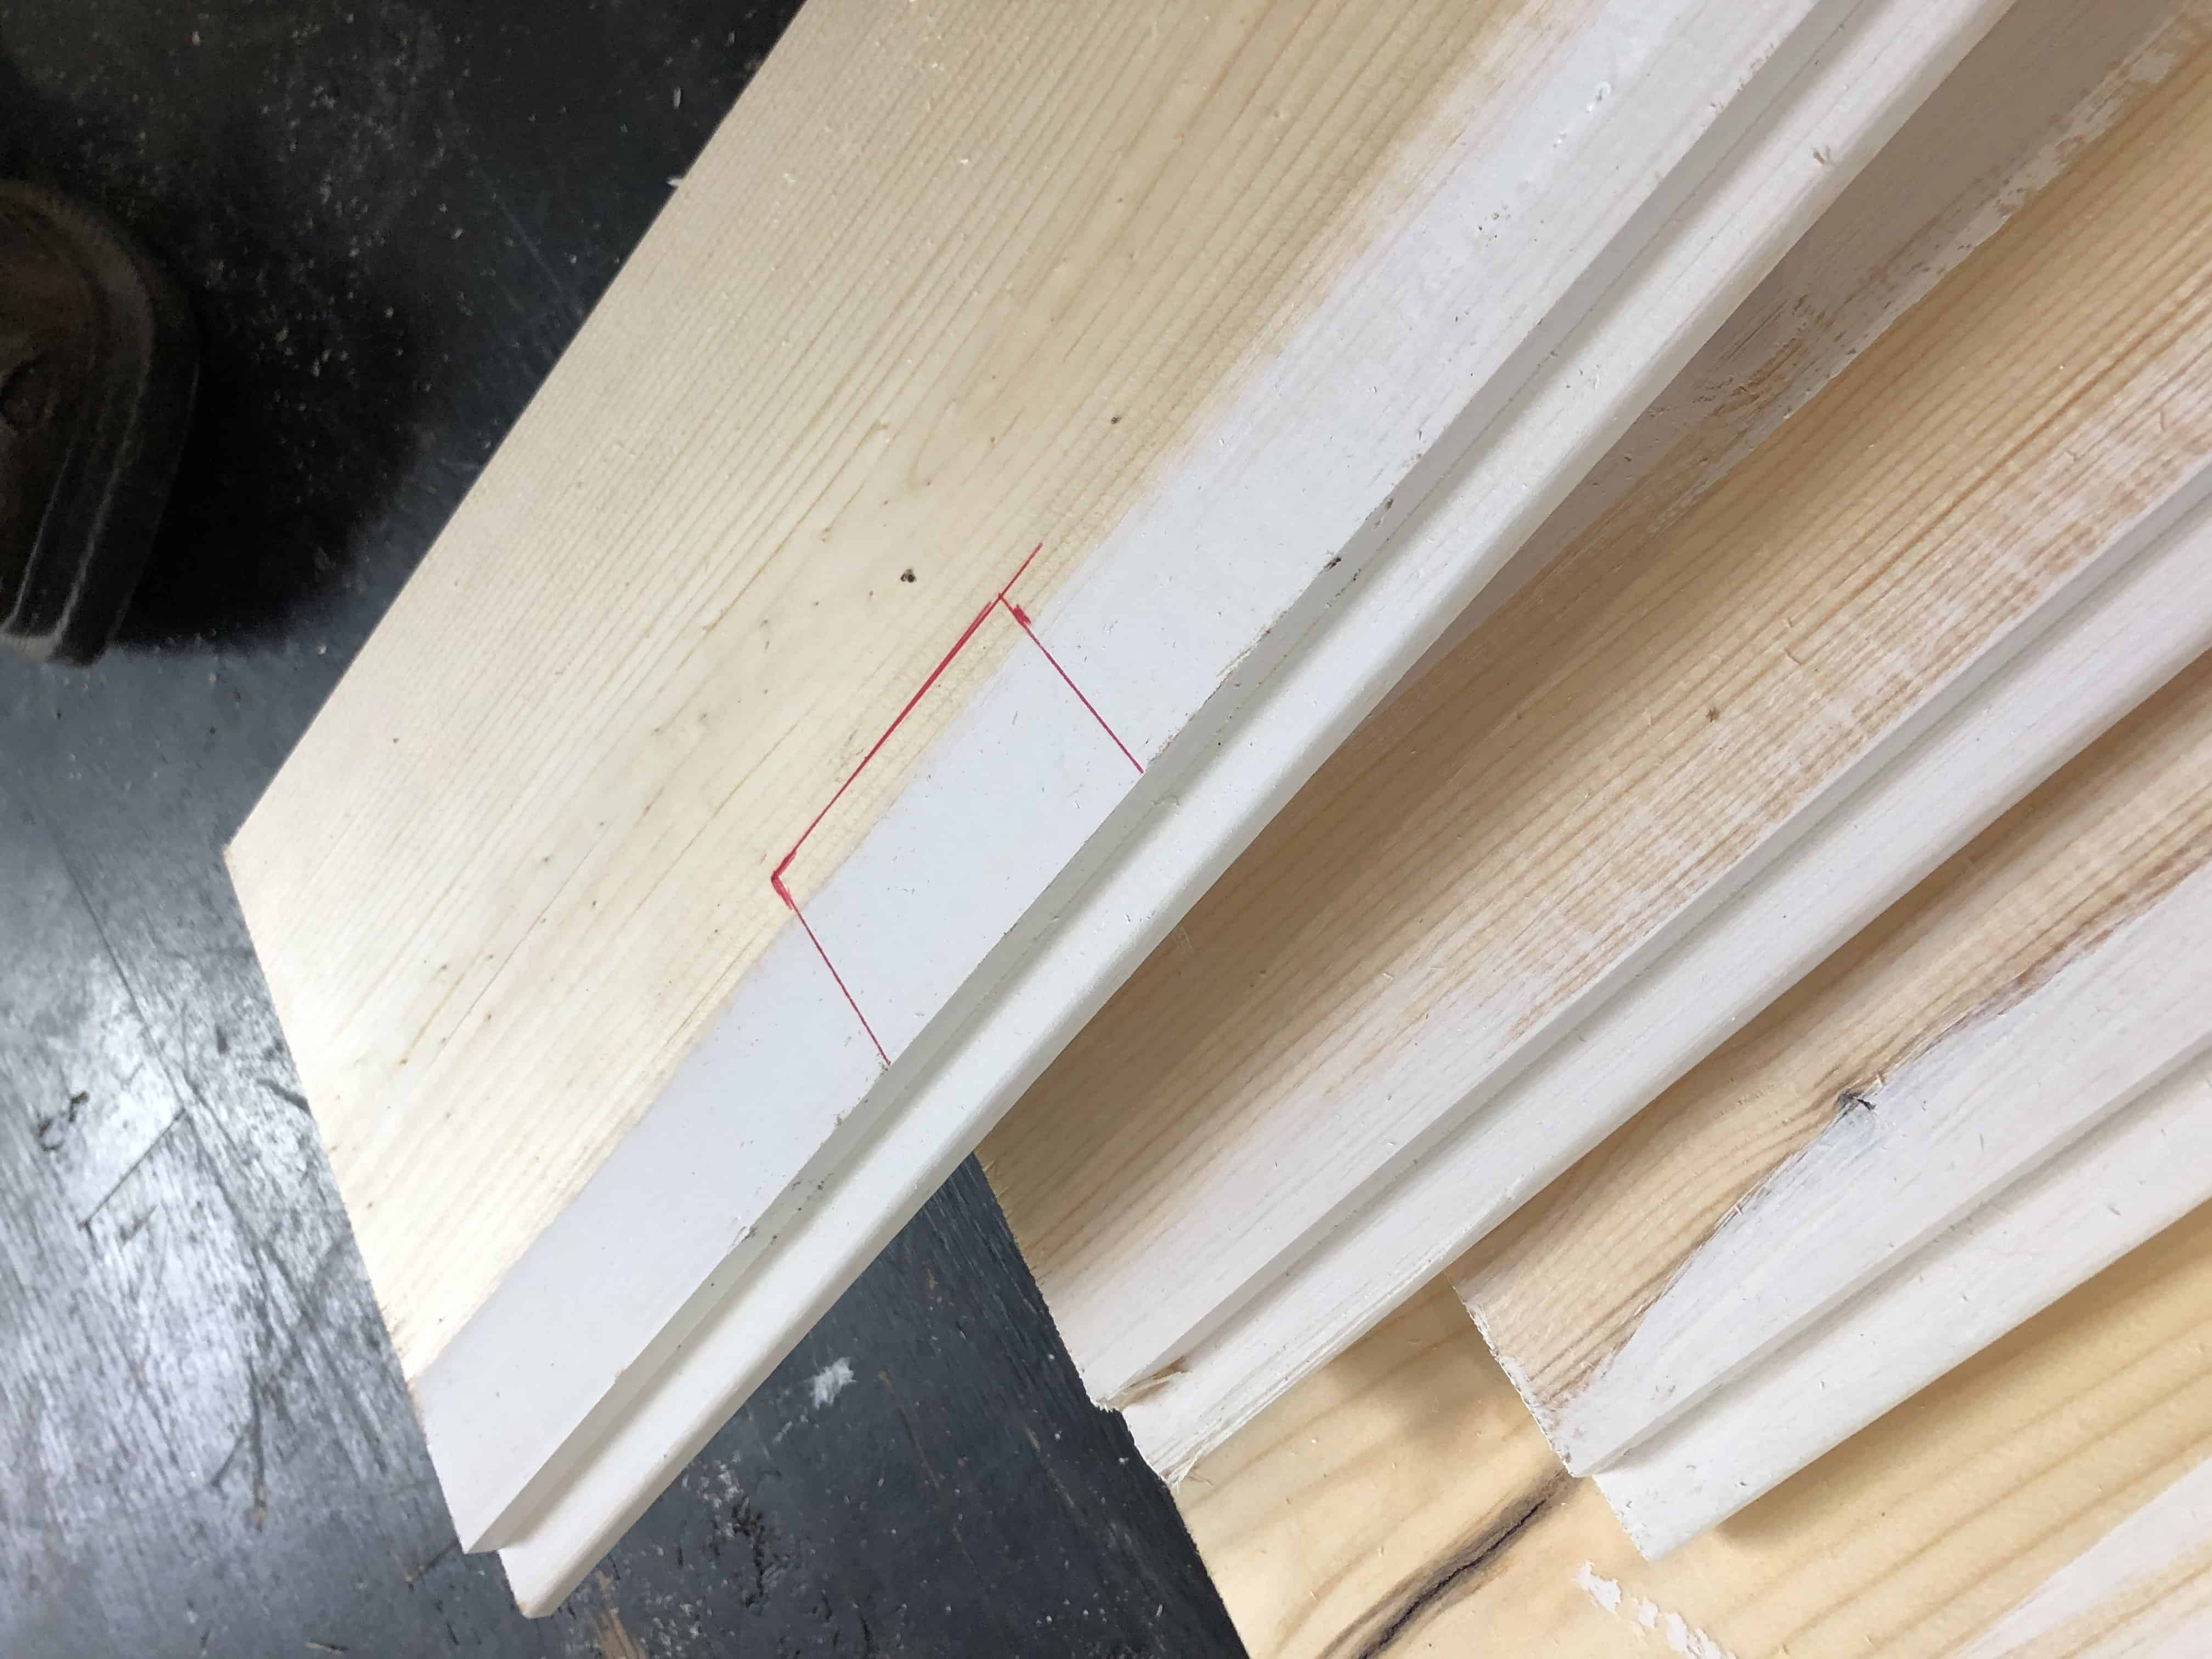 Cutting shiplap for outlets